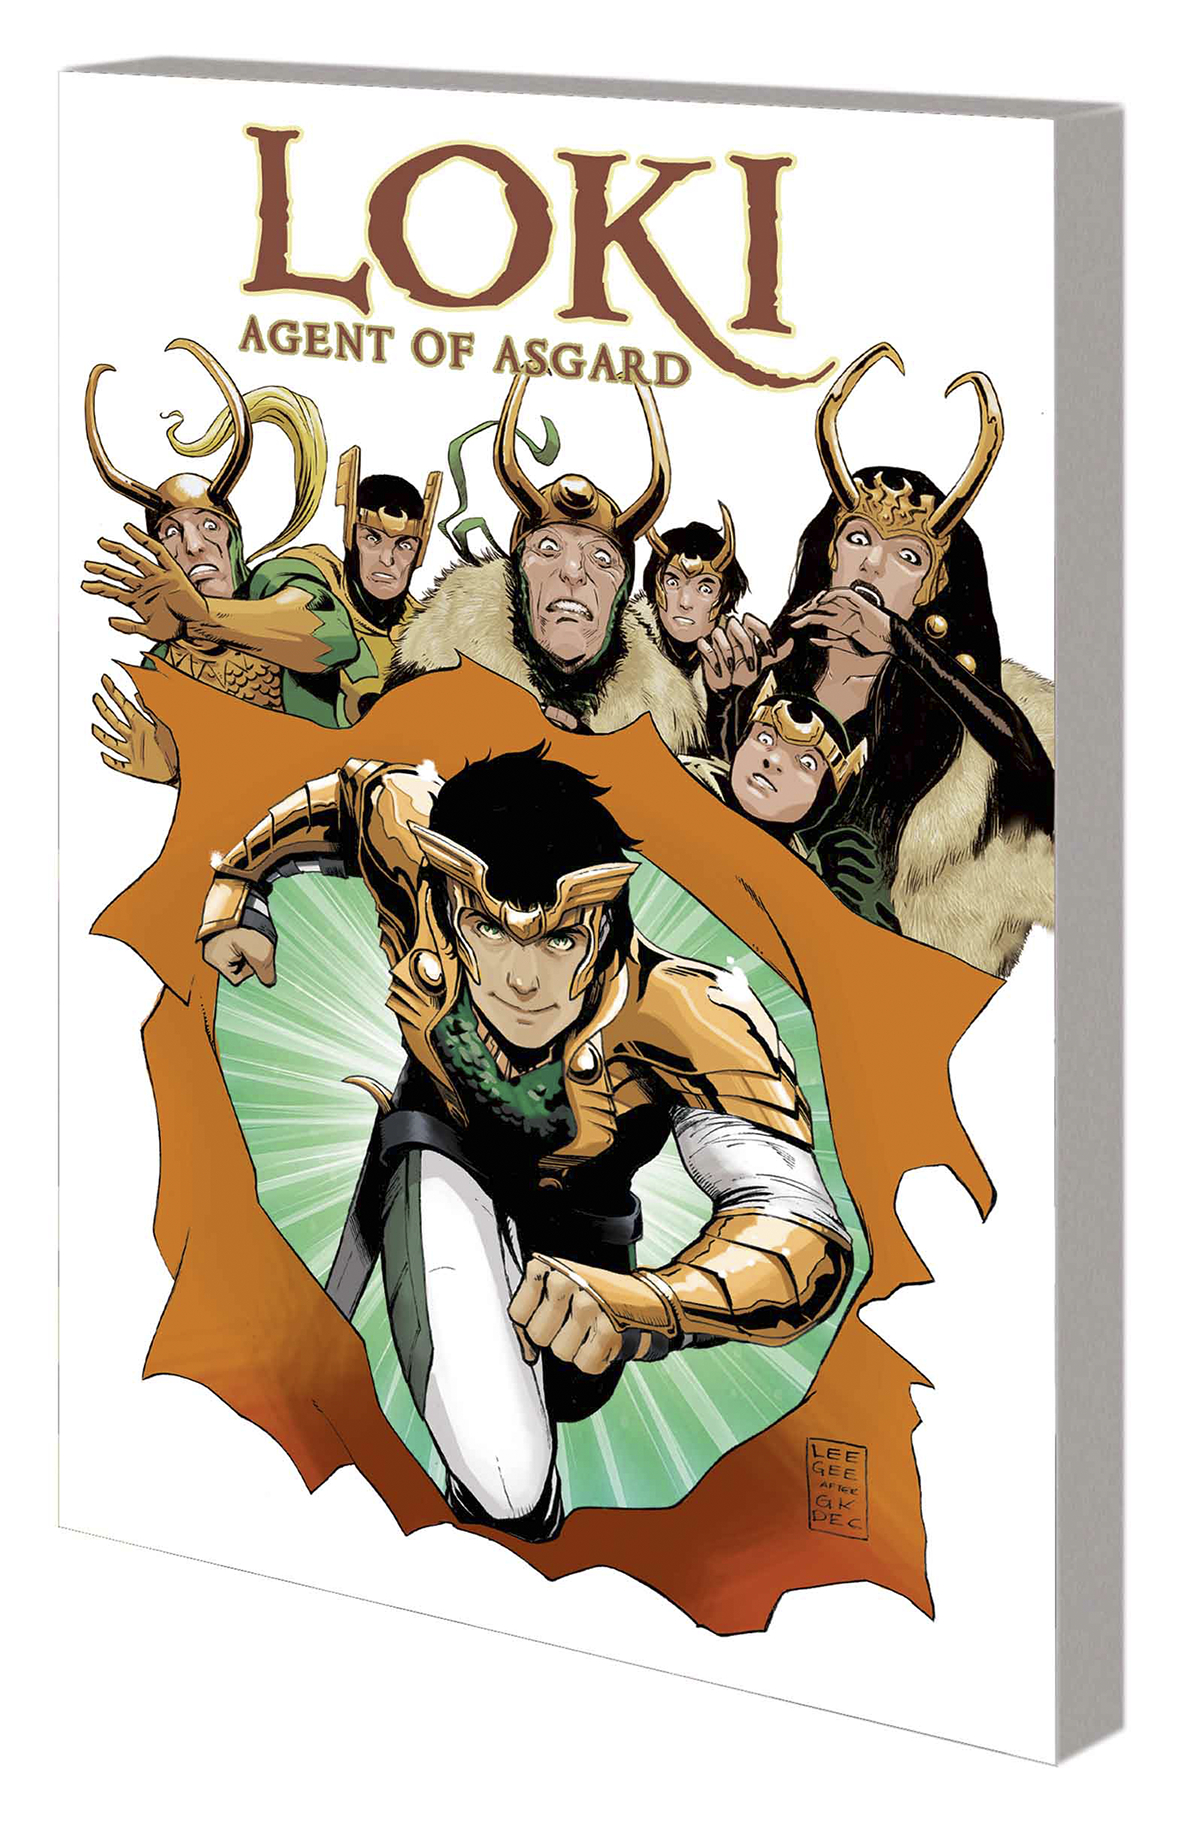 LOKI AGENT OF ASGARD TP VOL 02 I CANNOT TELL A LIE